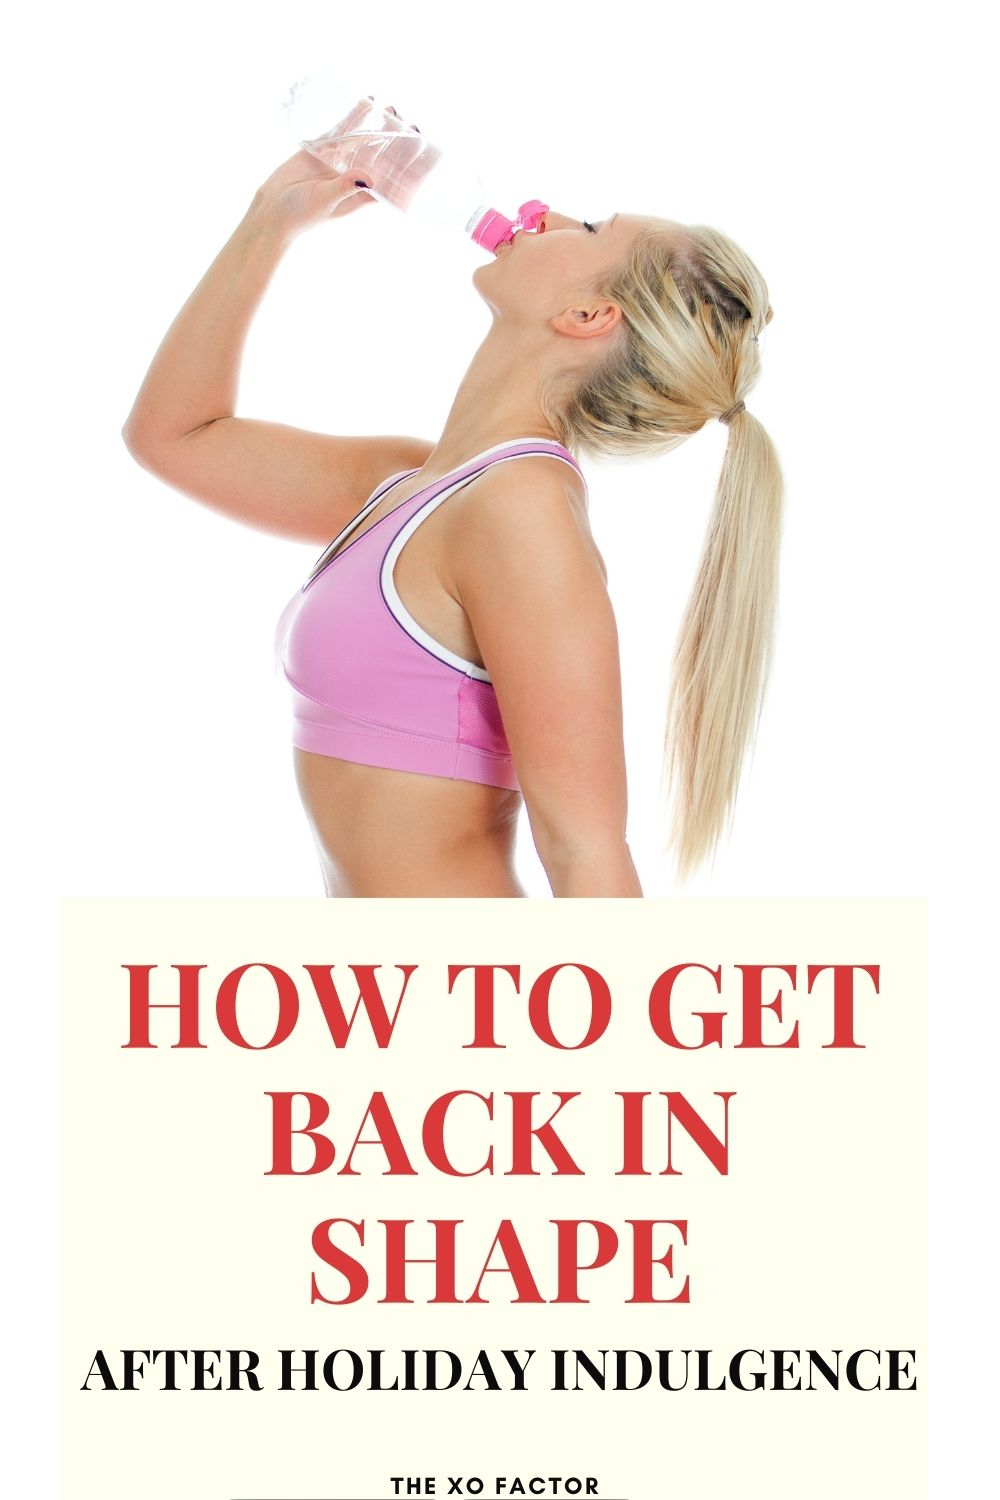 how to get back in shape after holiday indulgence